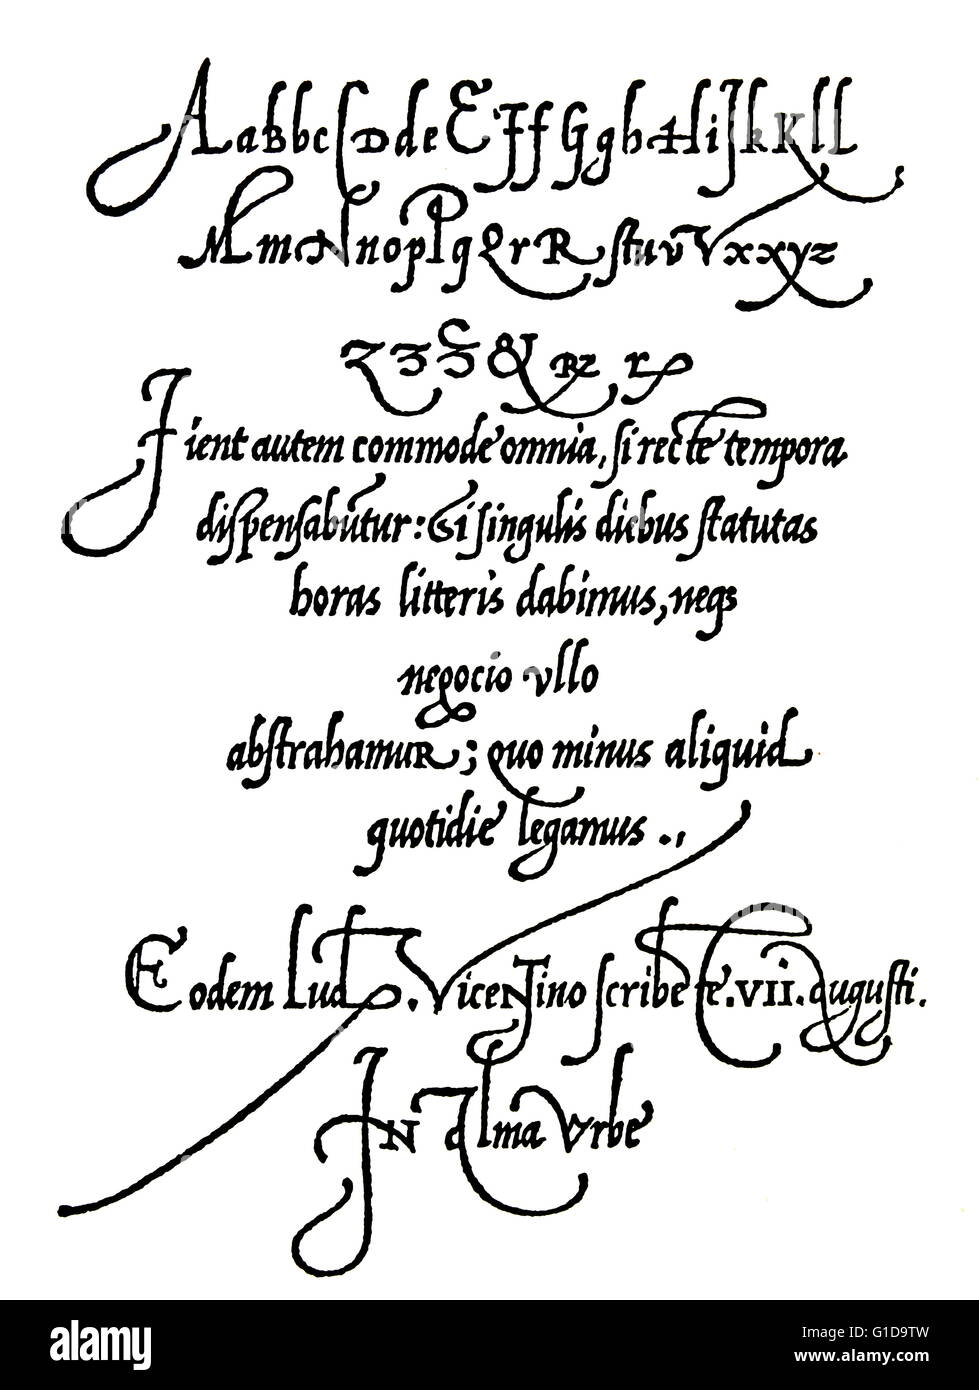 Page from Arrighi's Operina writing manual of 1539 showing handwriting styles of 16th century, early renaissance. - Stock Image